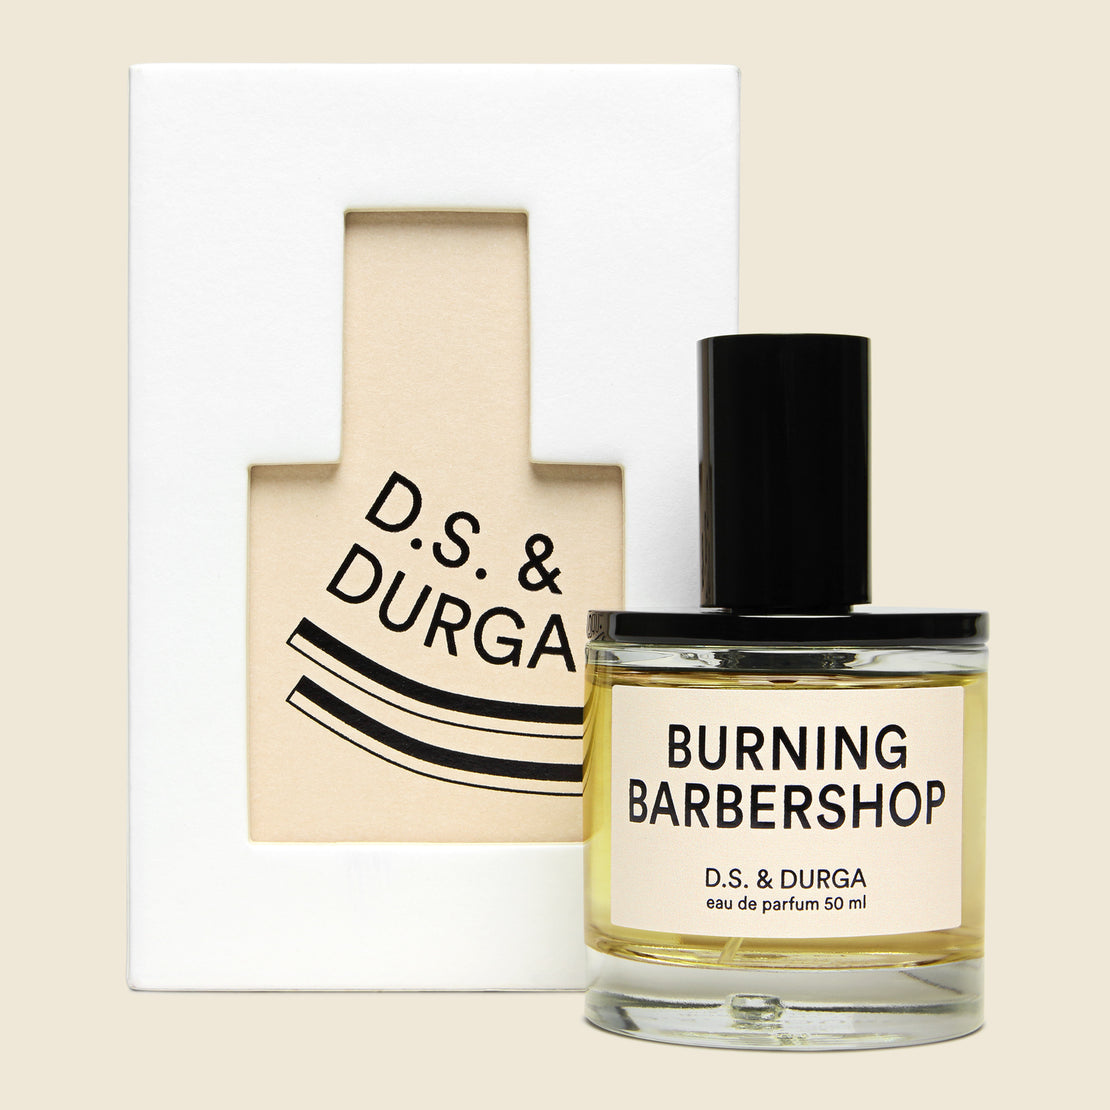 D.S. & Durga Burning Barbershop Cologne